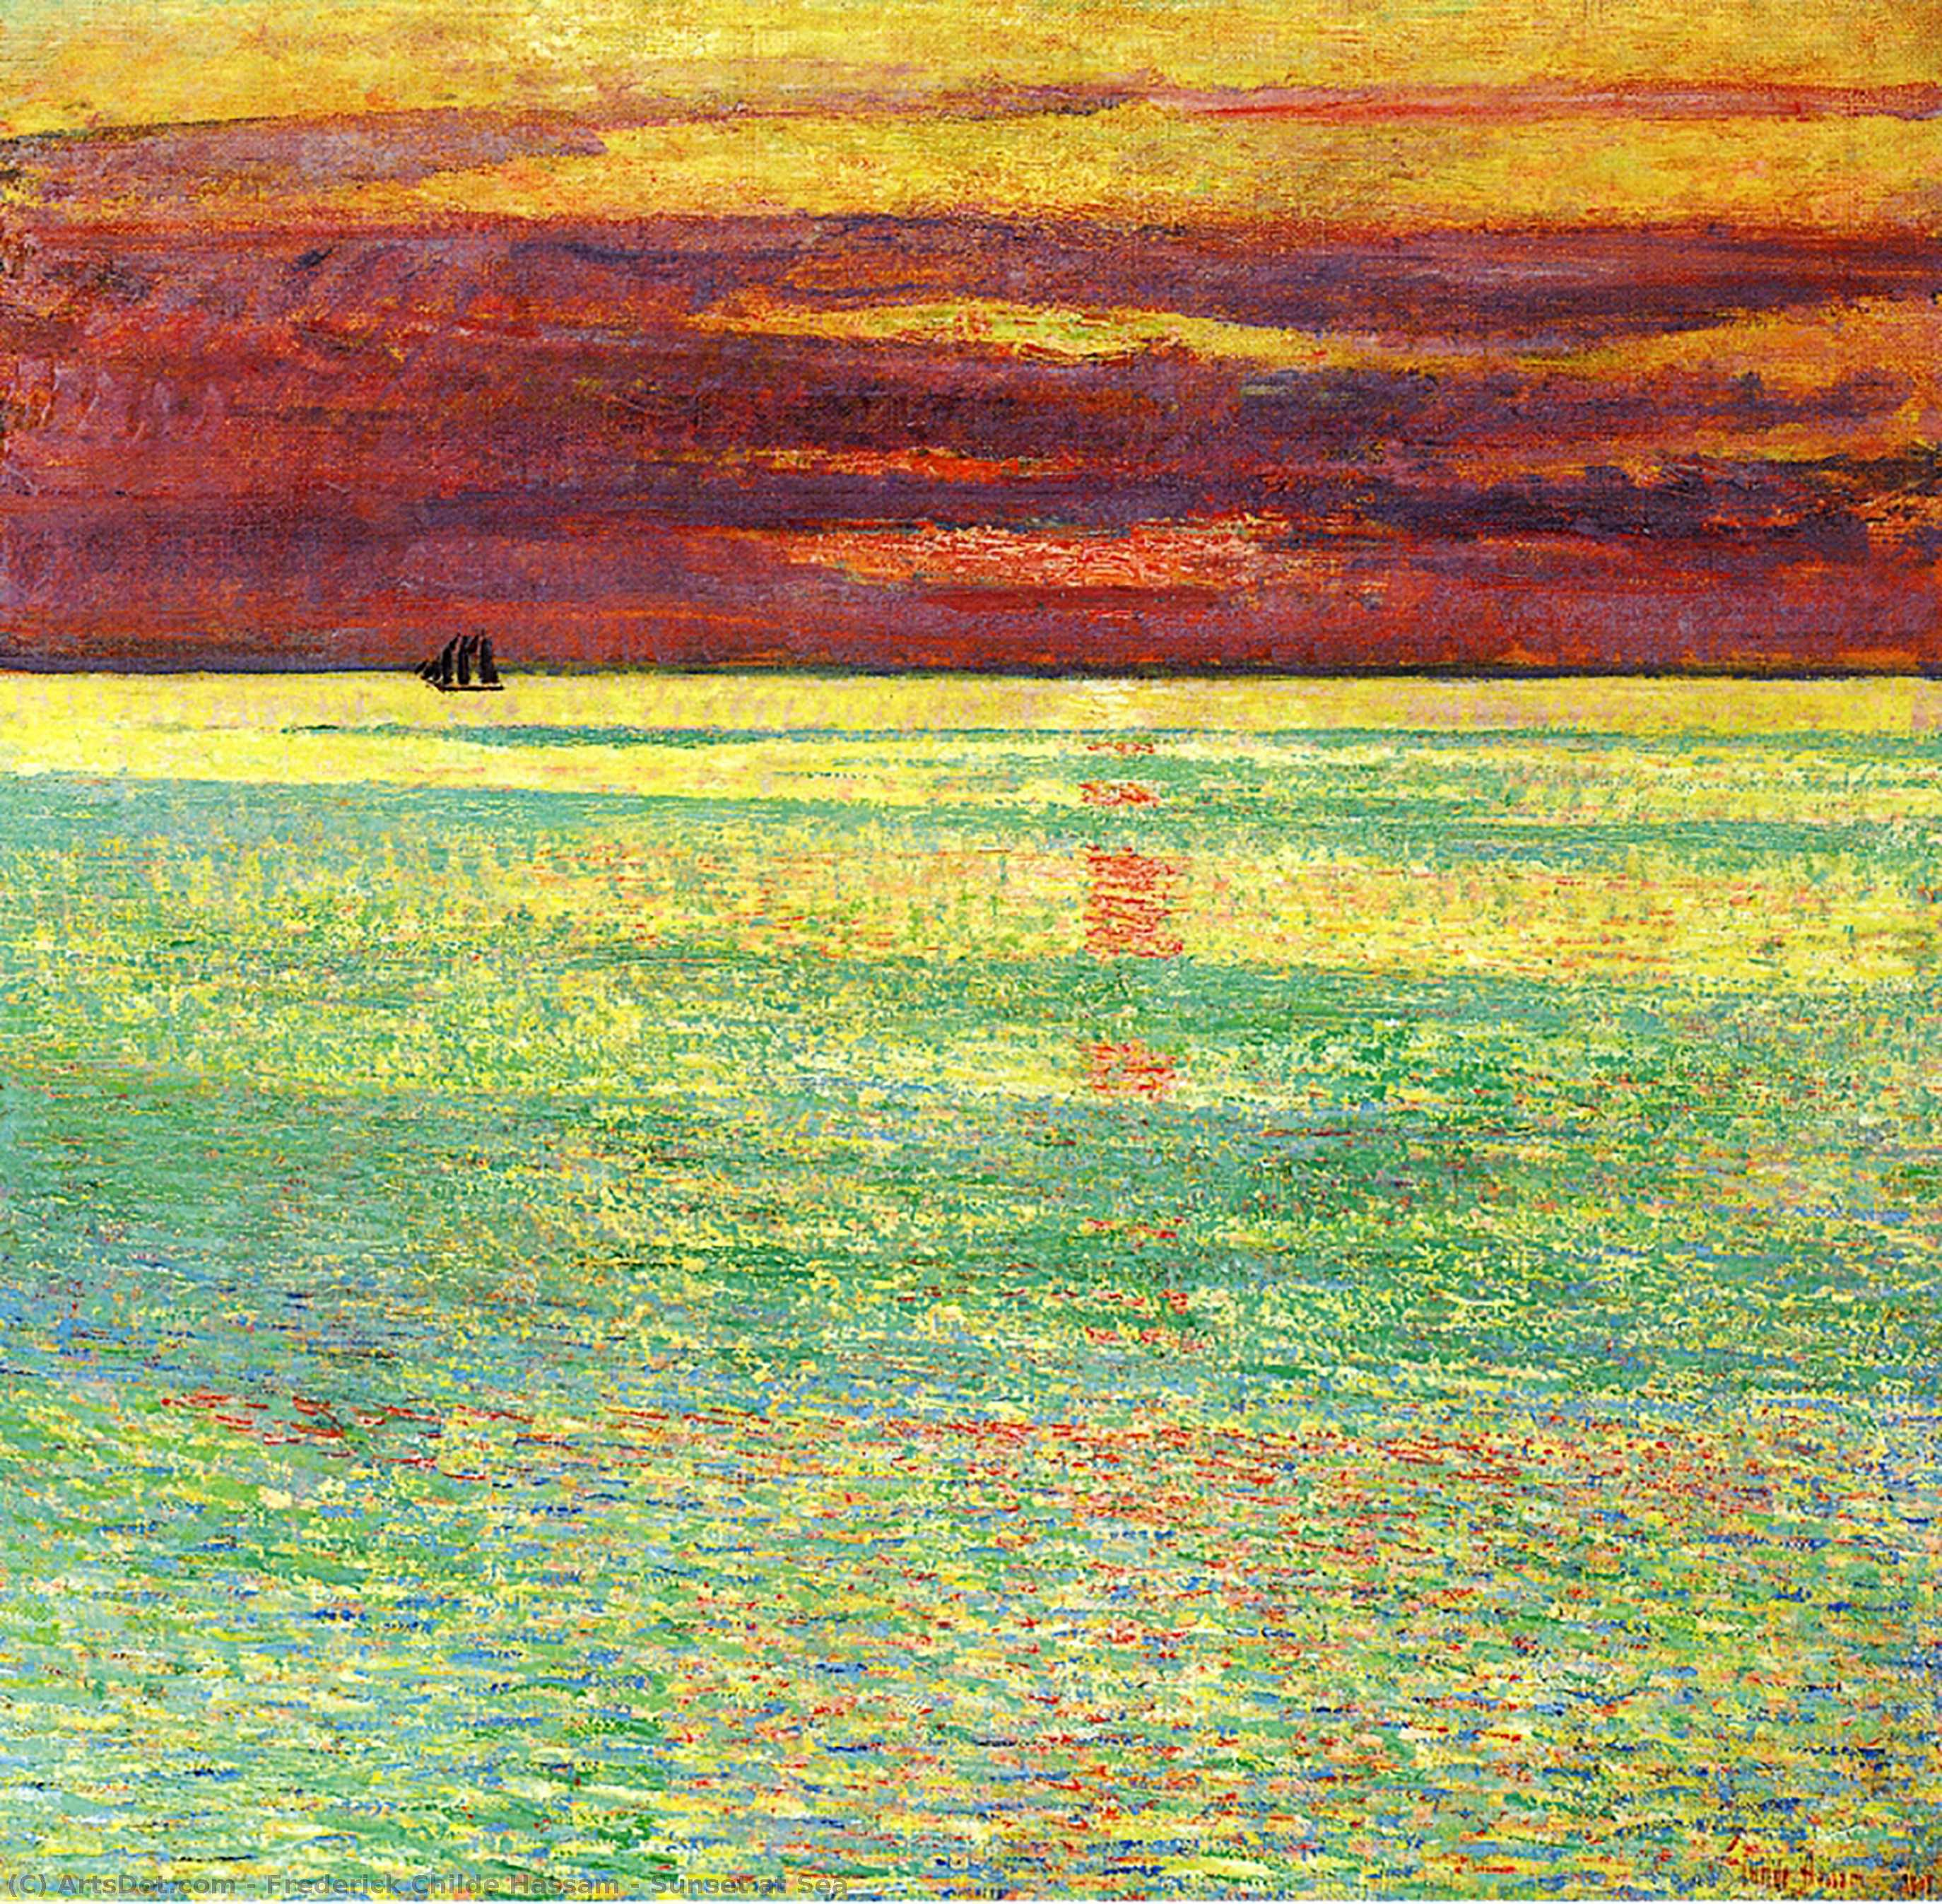 WikiOO.org - Enciclopedia of Fine Arts - Pictura, lucrări de artă Frederick Childe Hassam - Sunset at Sea